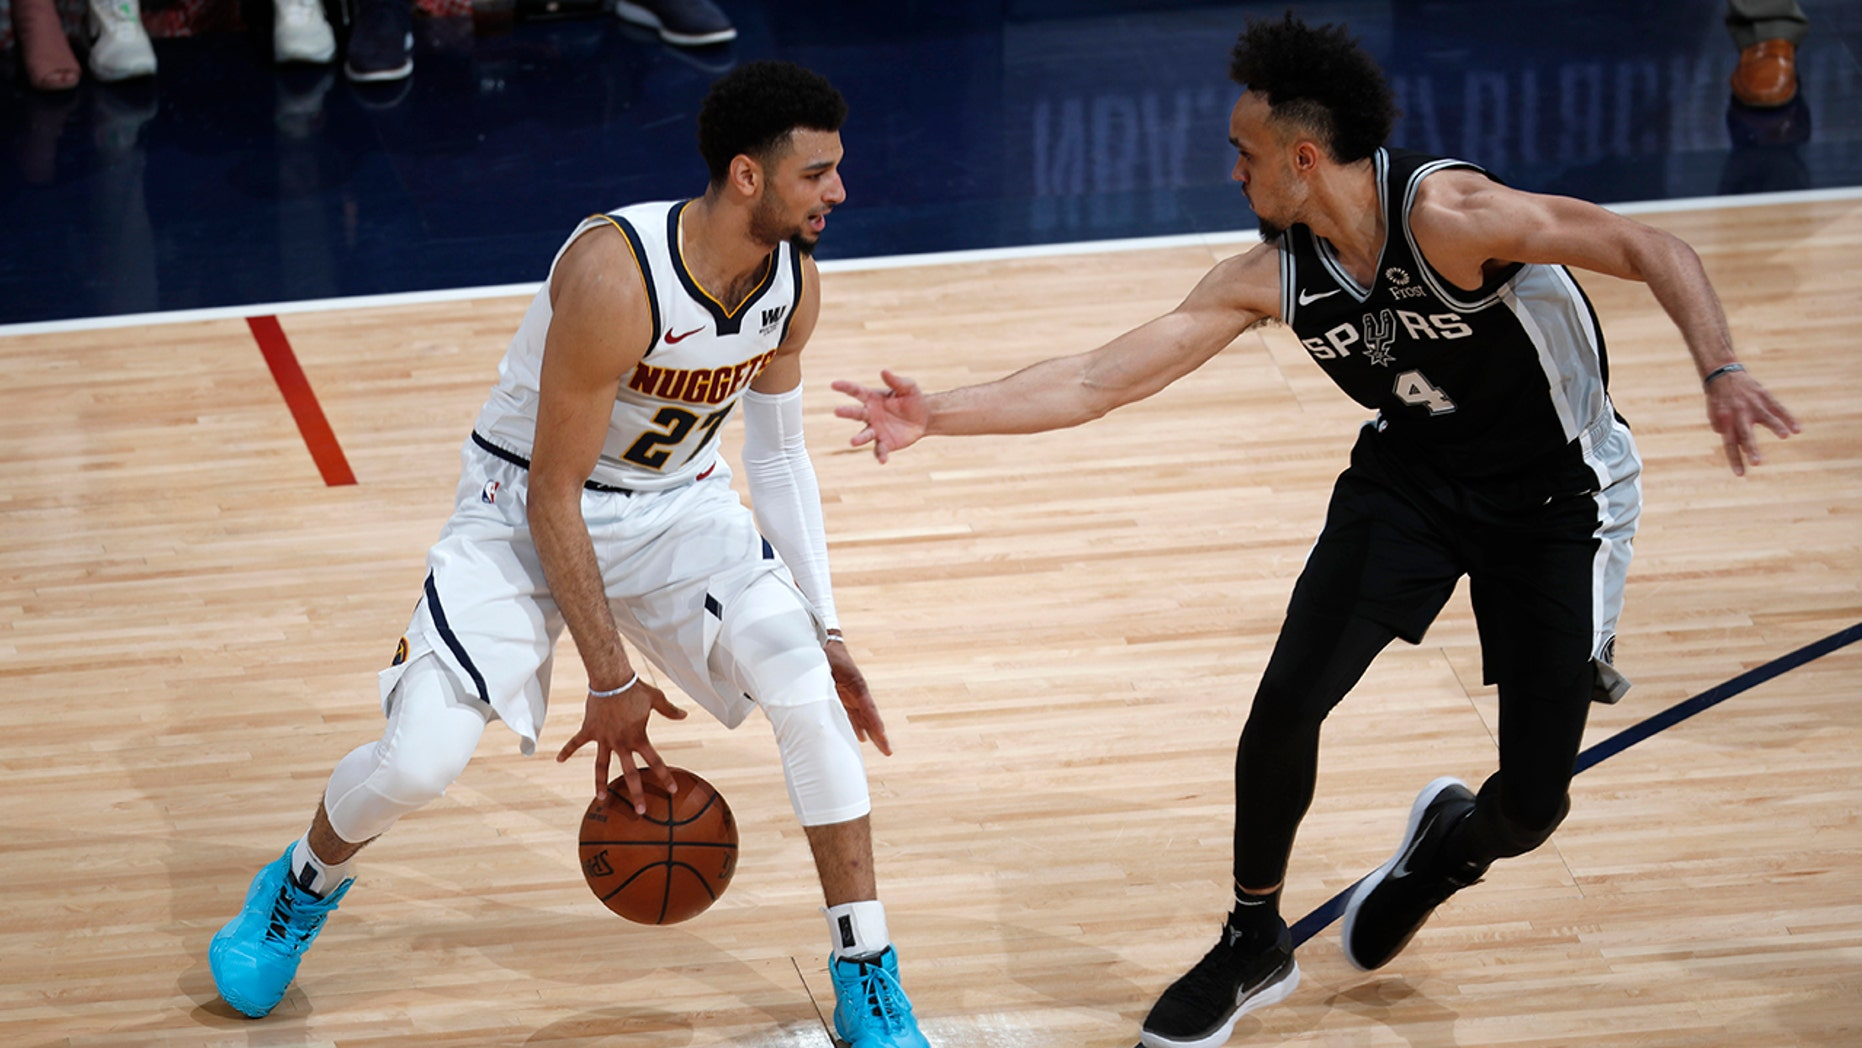 Westlake Legal Group NBA-Jamal-Murray Nuggets erase 19-point deficit in 114-105 win over Spurs fox-news/sports/nba/san-antonio-spurs fox-news/sports/nba/denver-nuggets fox-news/sports/nba-playoffs fox-news/sports/nba fnc/sports fnc bd4000cb-0ec7-5666-81f4-17a664e0cefc Associated Press article